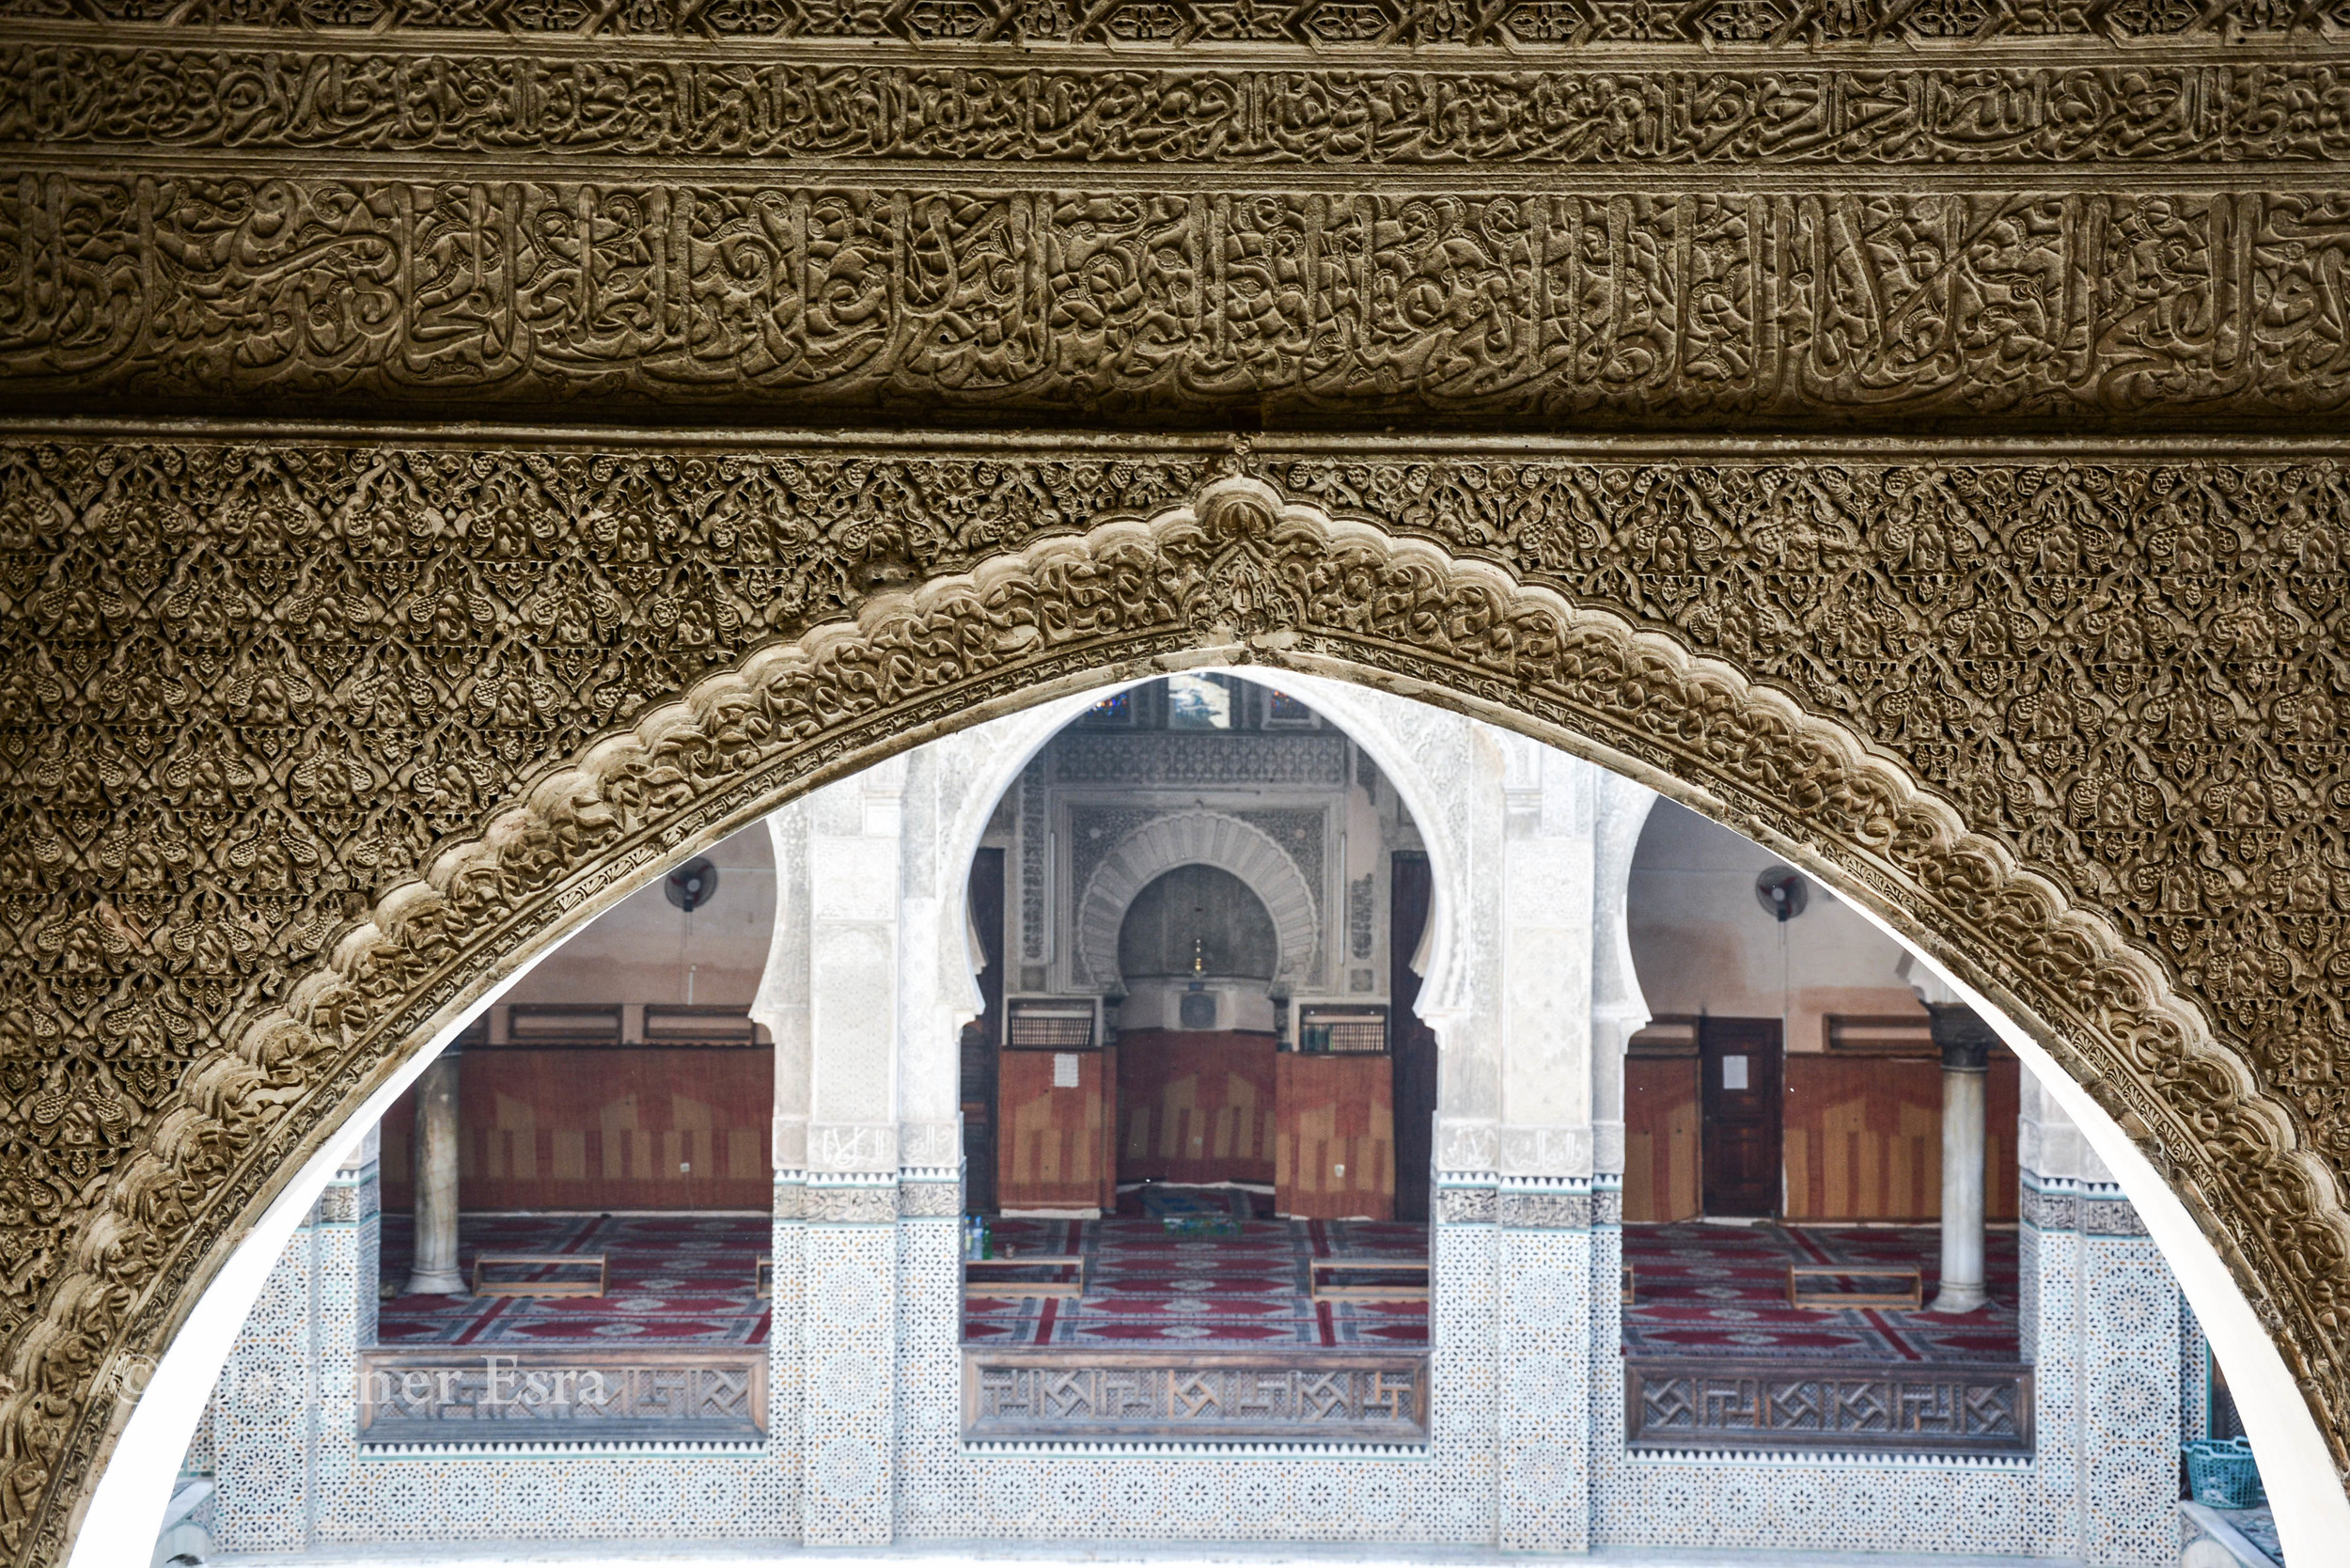 Arches and carvings in Islamic Architecture